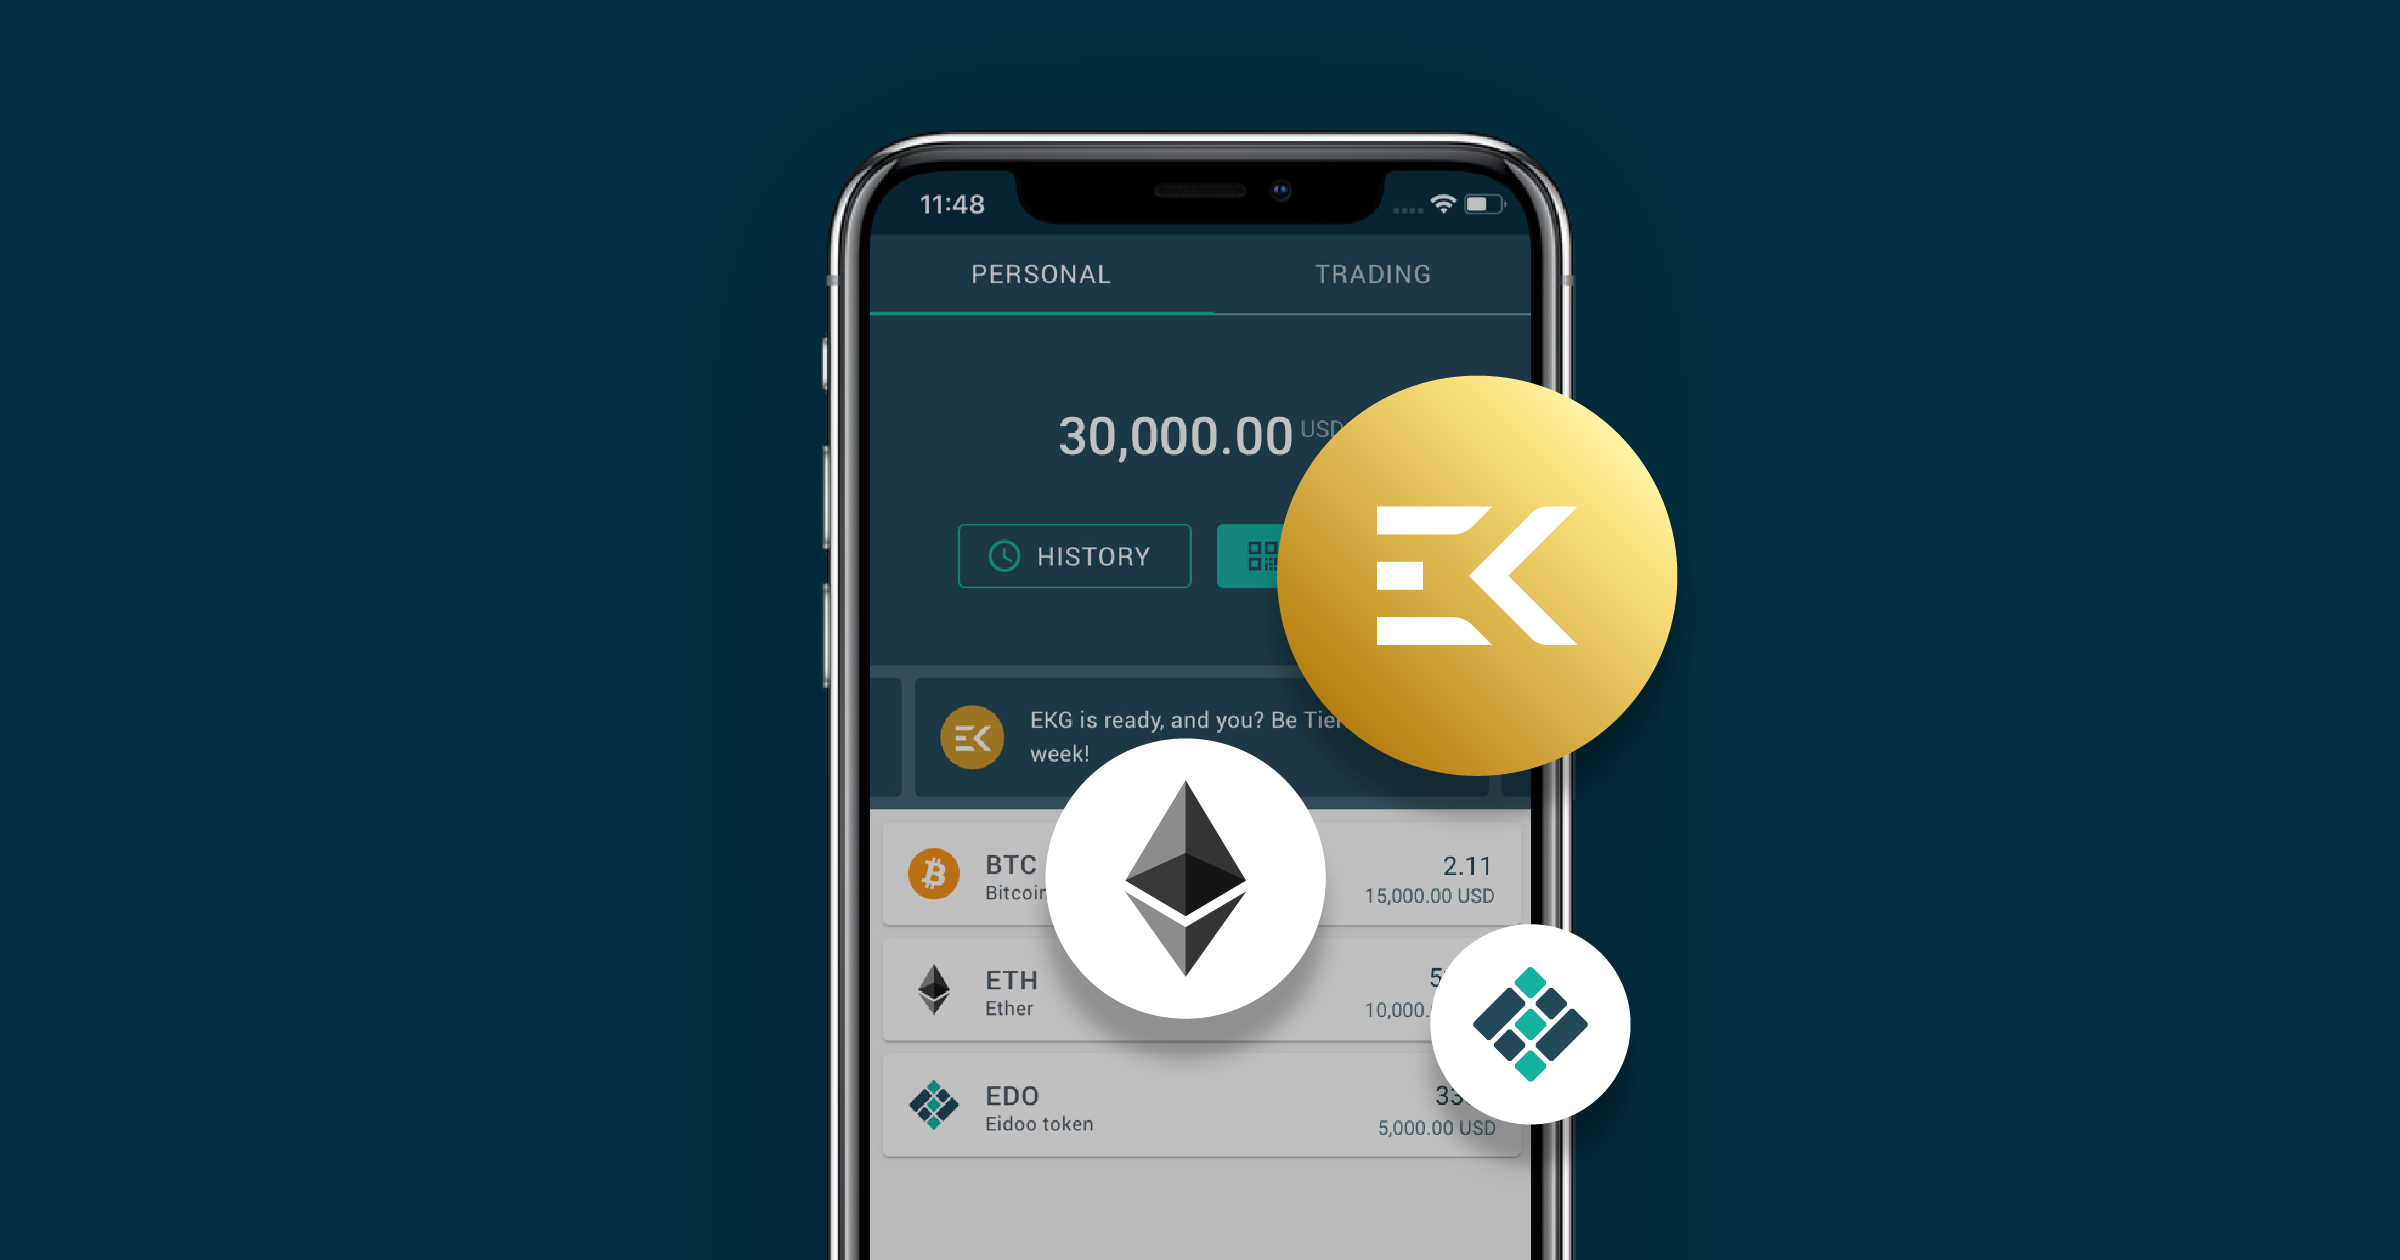 The first Ekon Gold has been minted. Get EKG on the app!